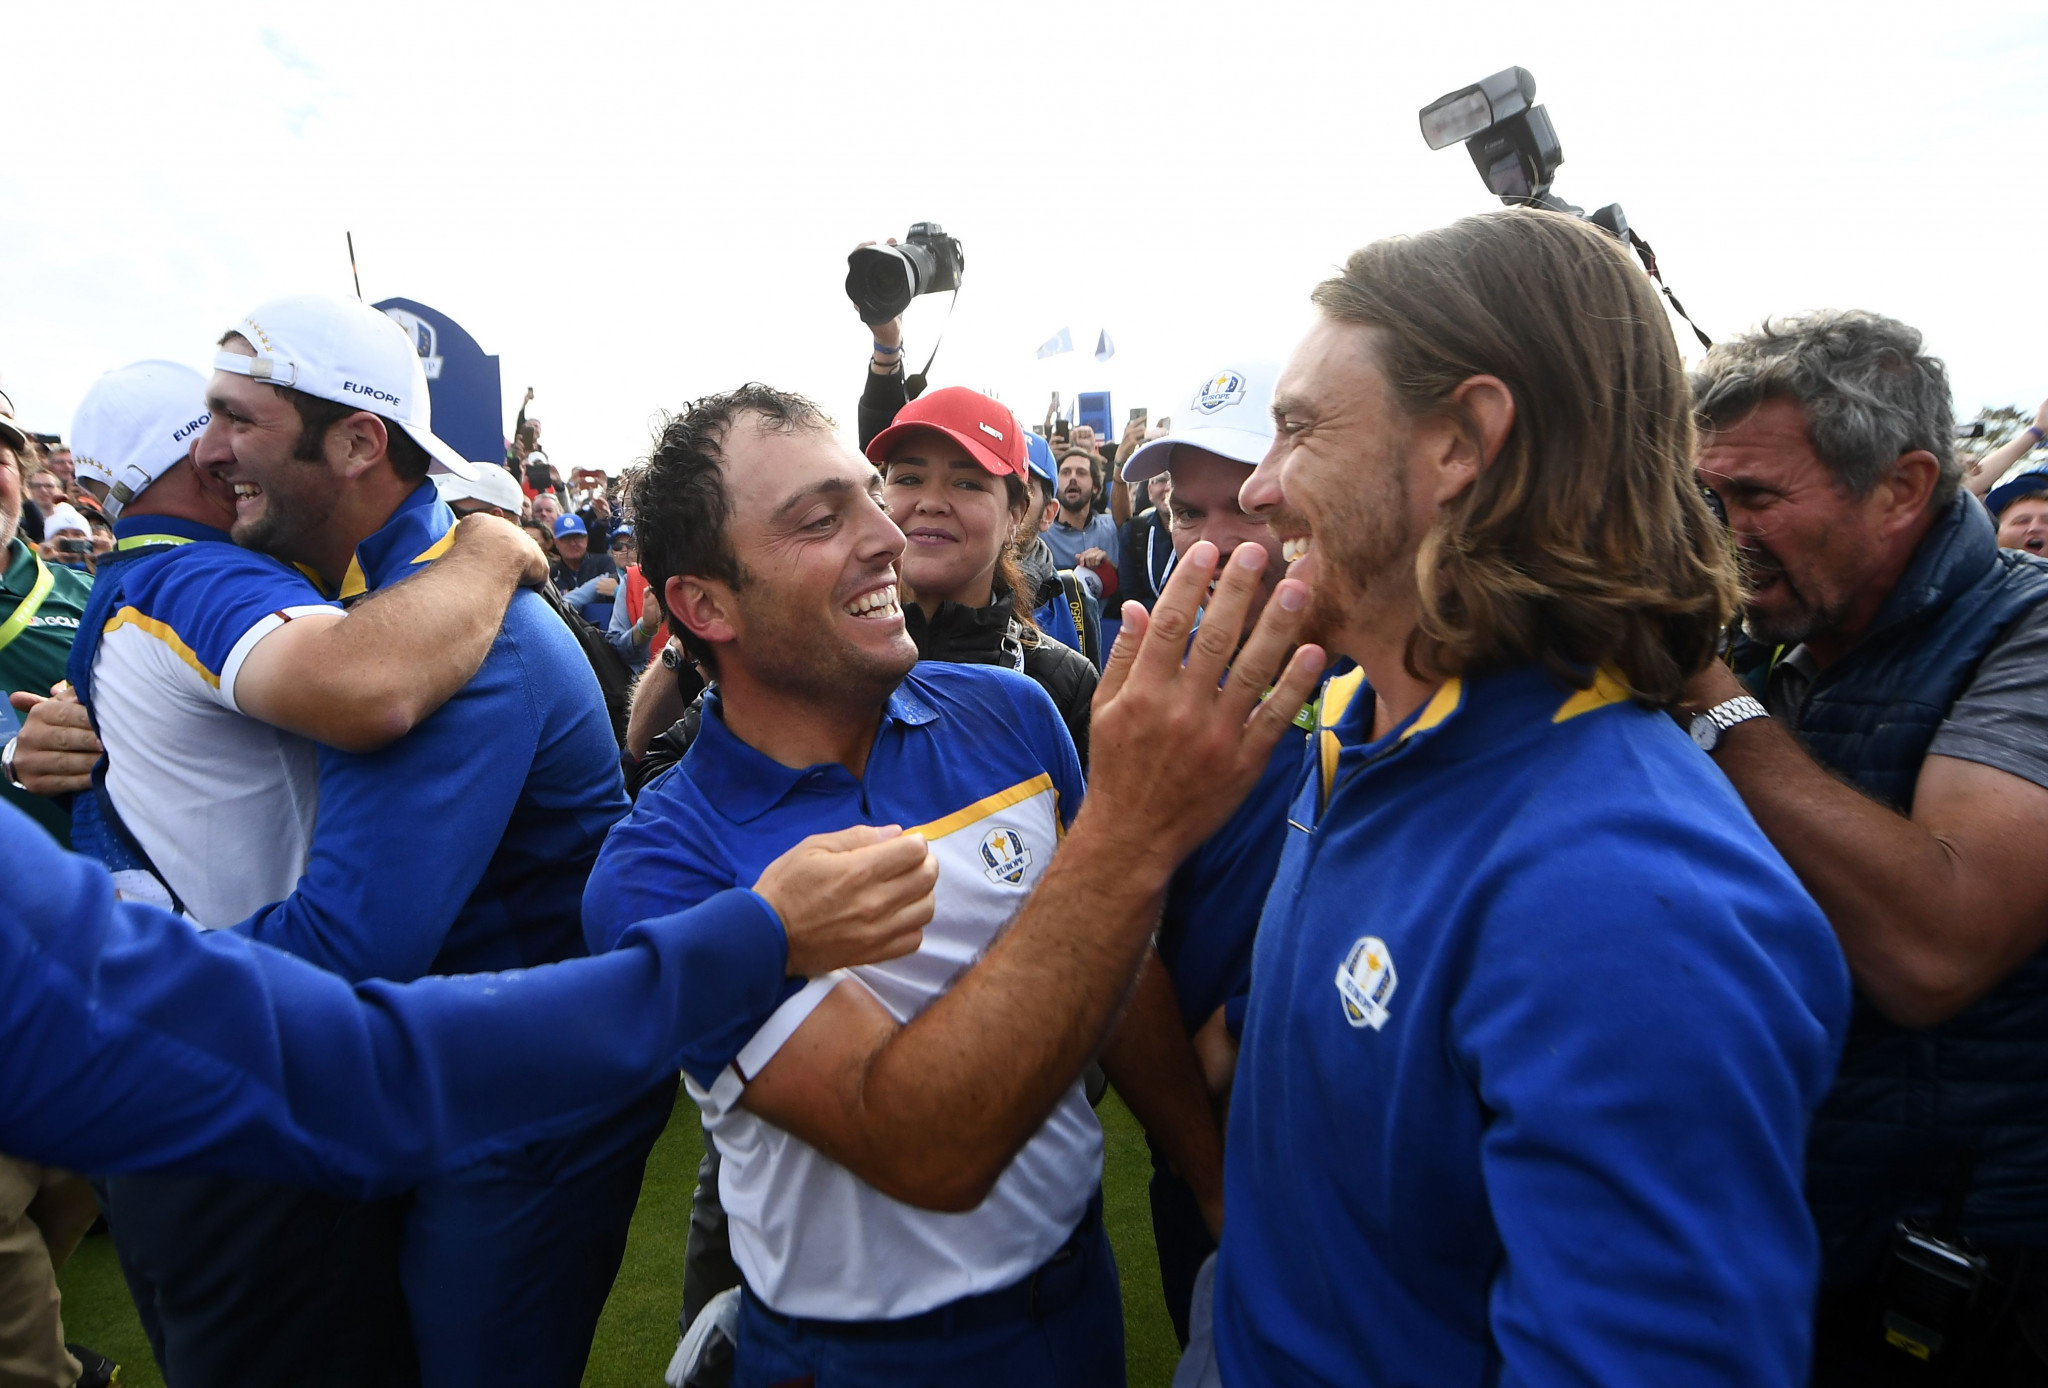 The Ryder Cup catches the attention of casual golf fans as well as avid viewers ©Getty Images